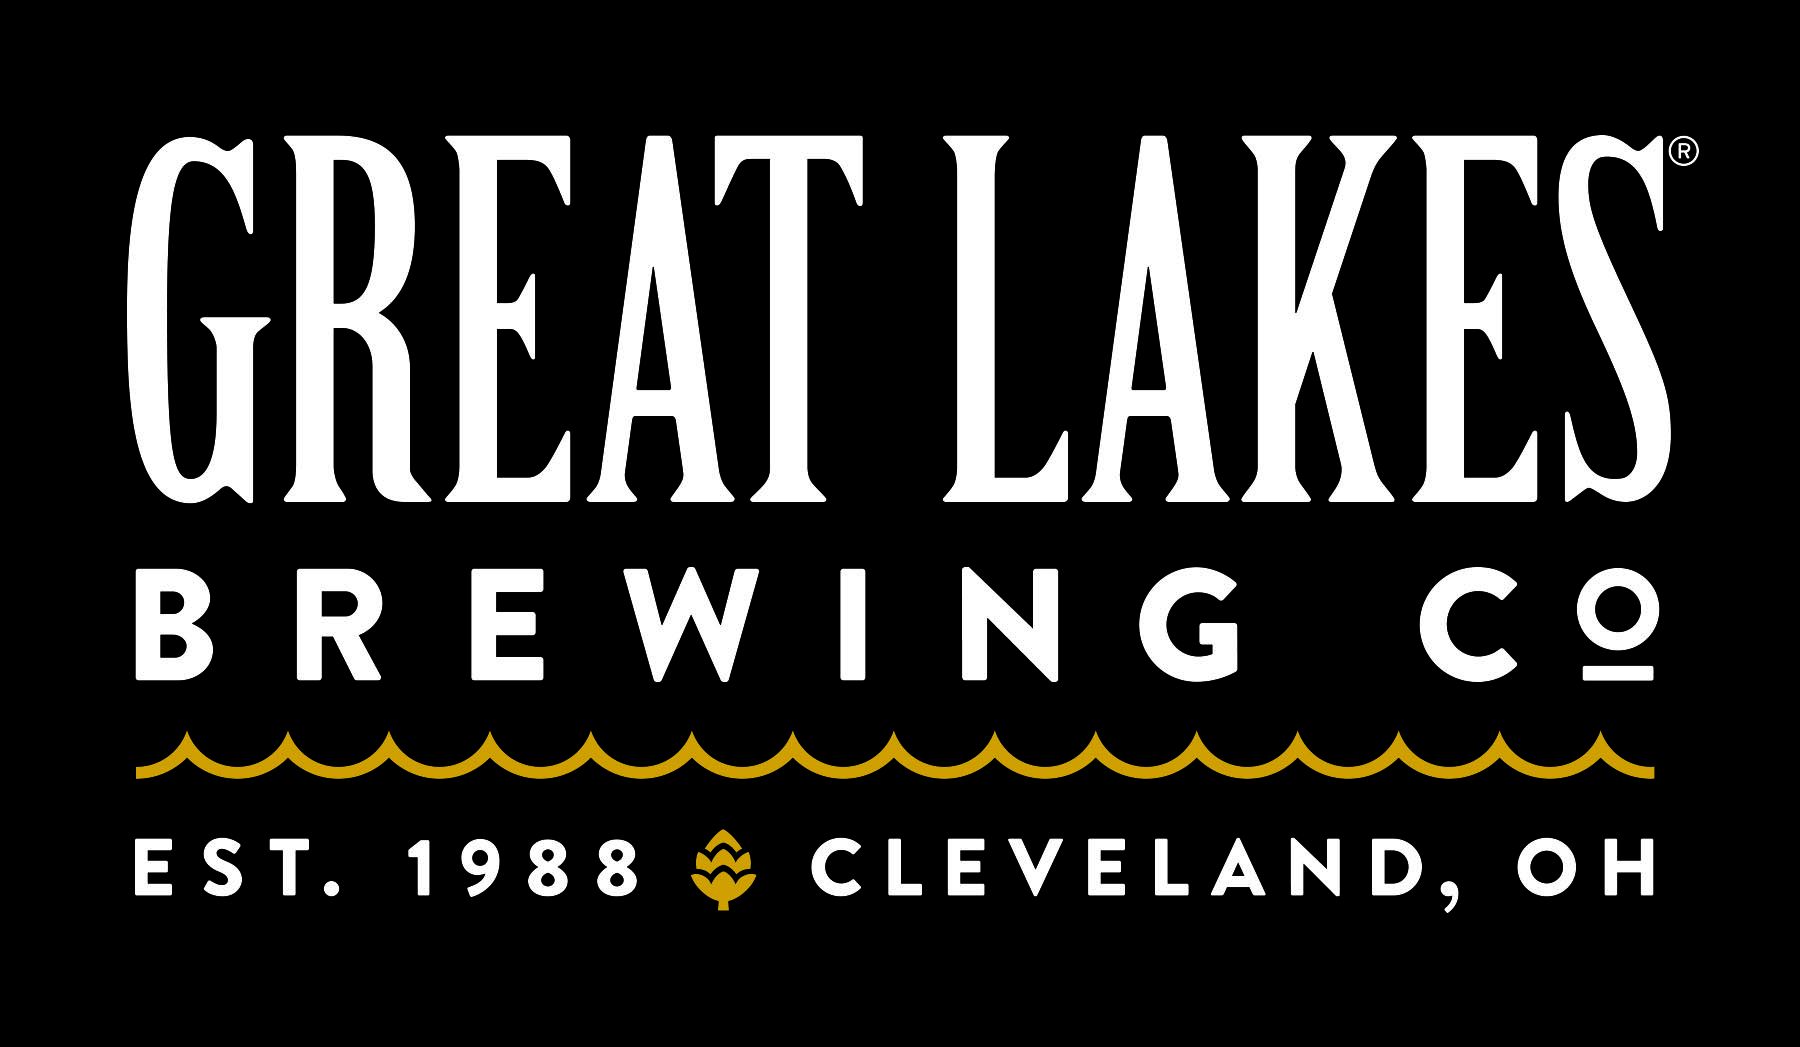 Beers with the Brewer ft. Great Lakes Brewing Co.